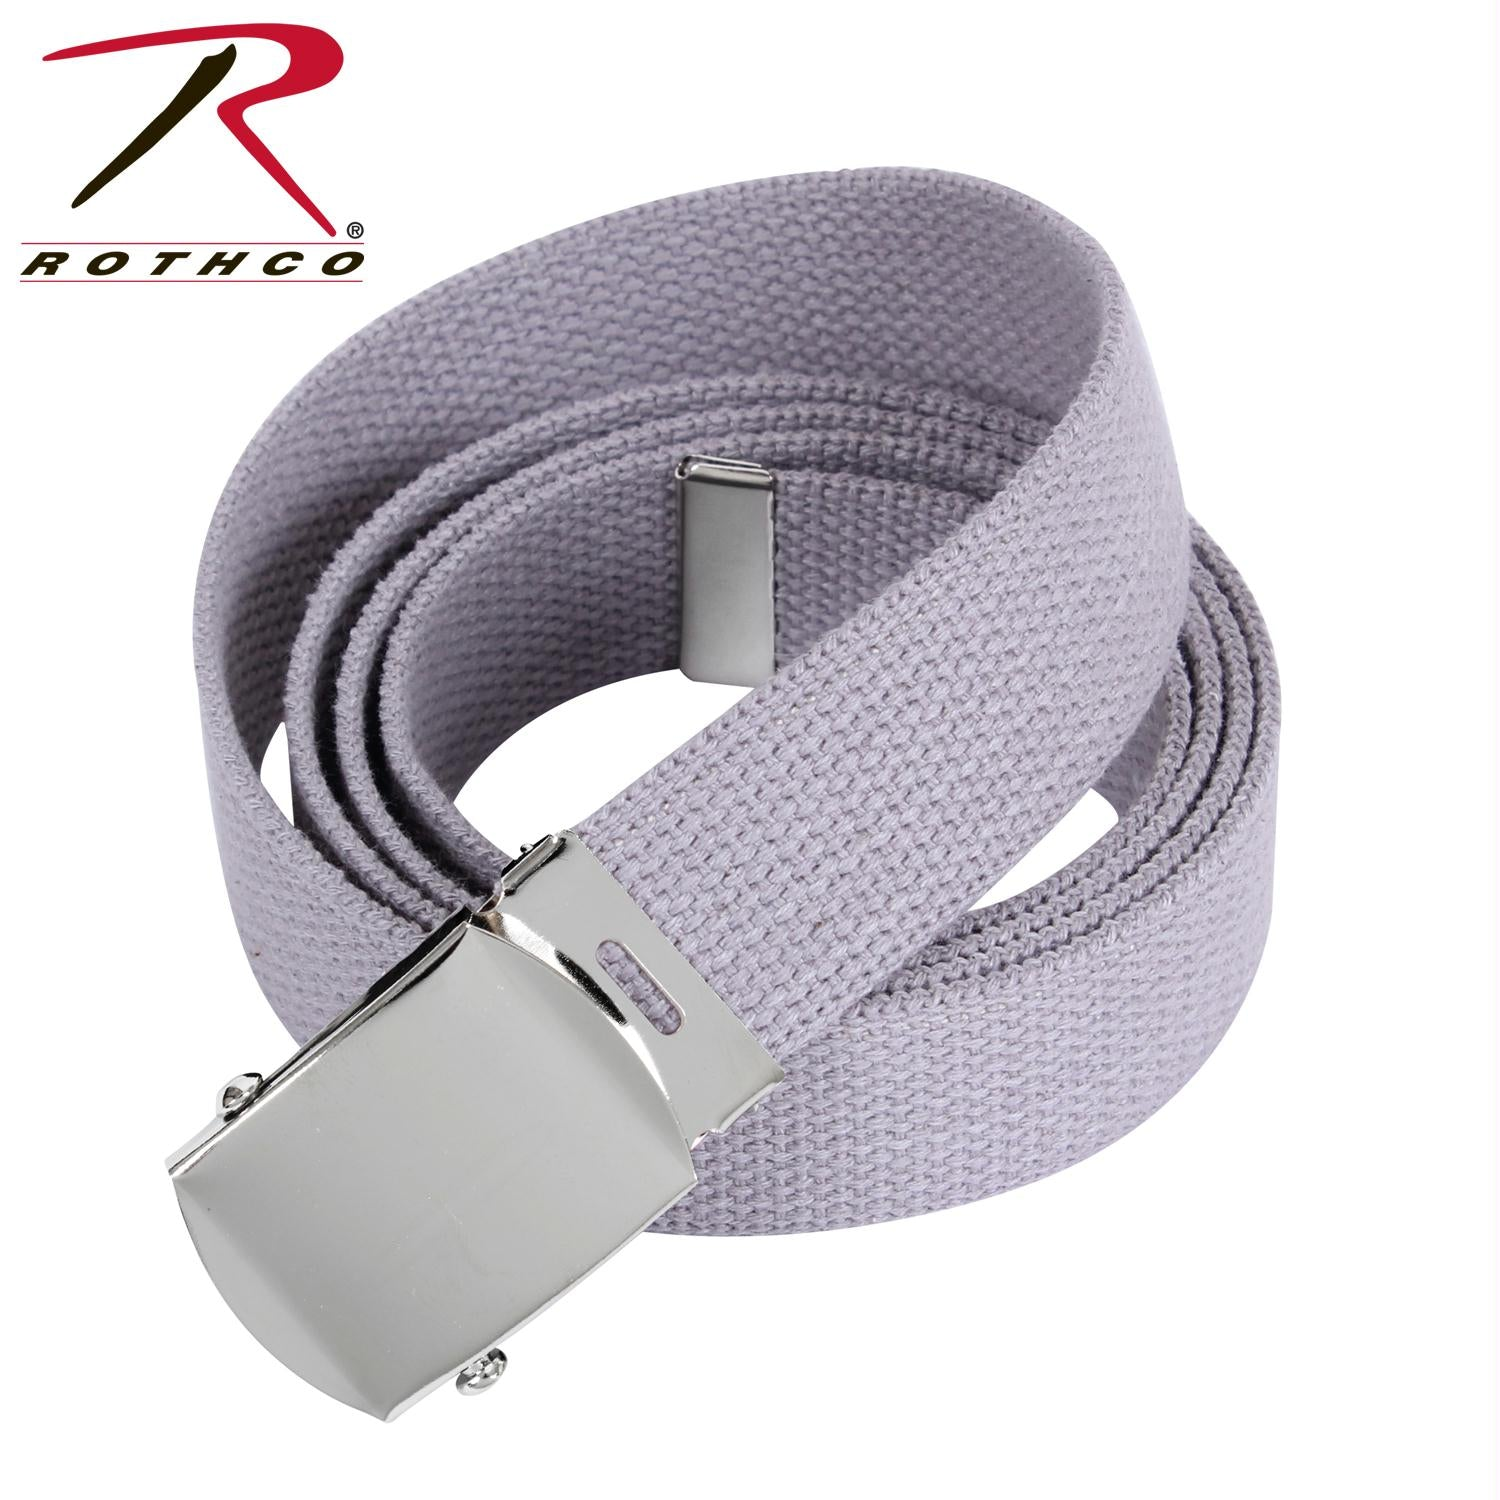 Rothco 54 Inch Military Web Belts - Chrome / Grey